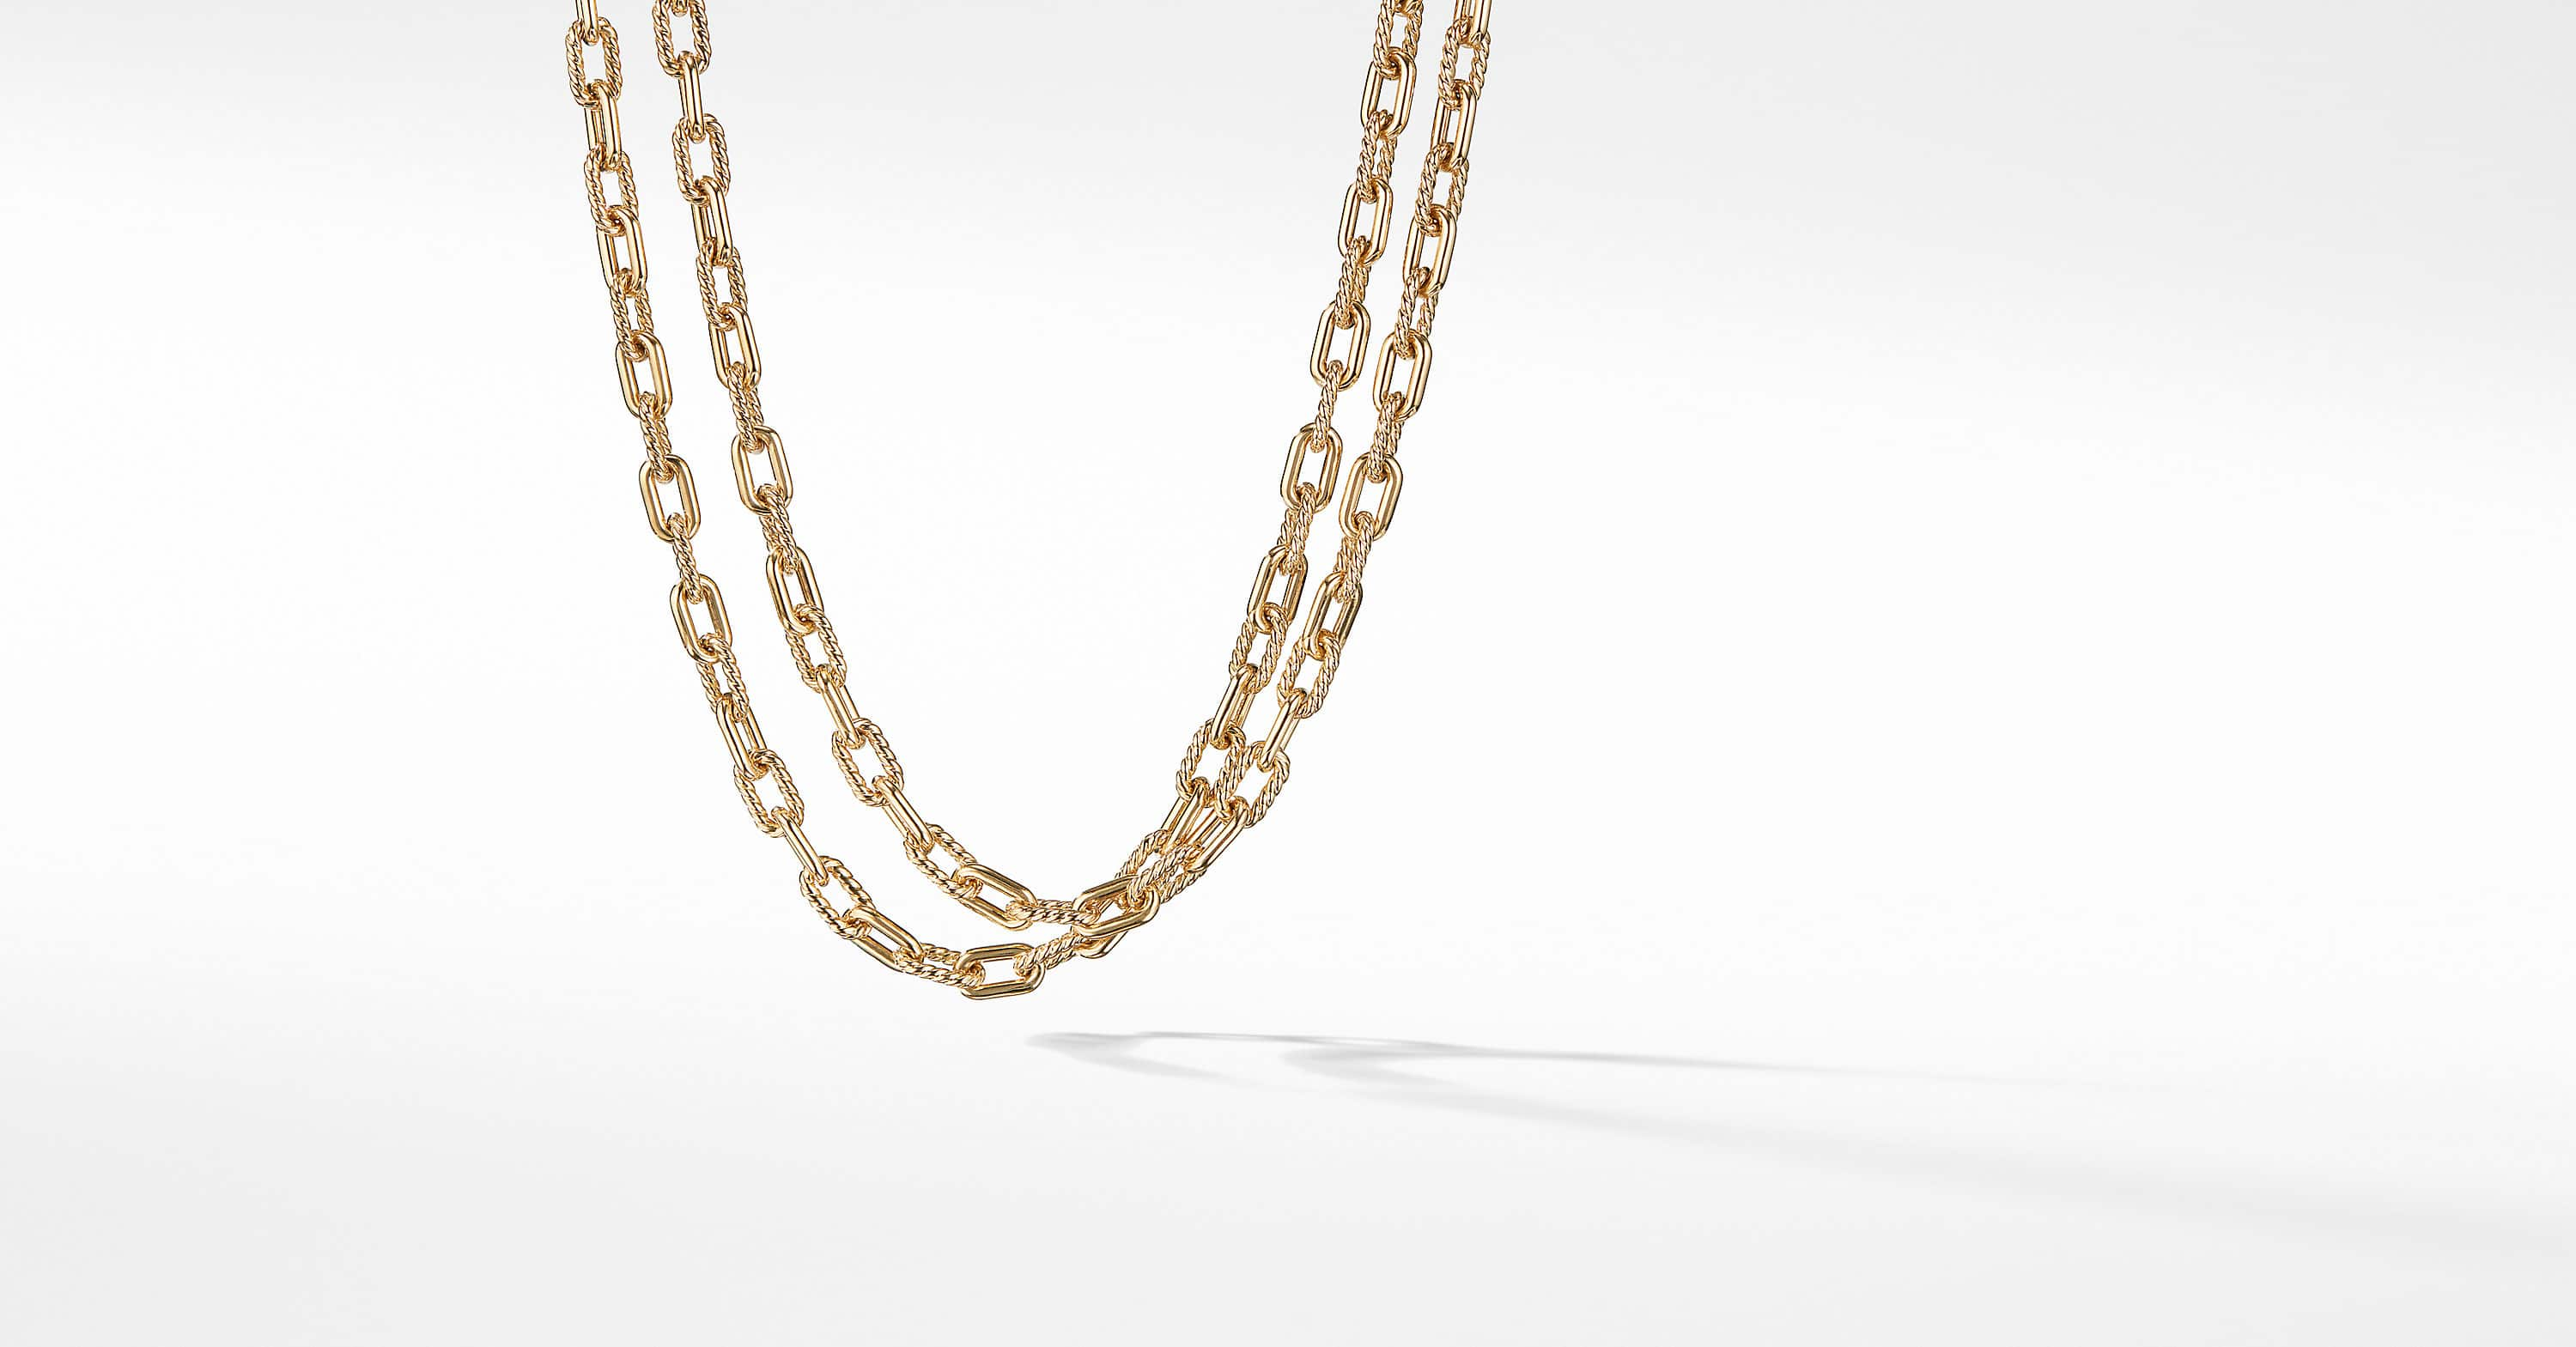 DY Madison Chain Bold Necklace in 18K Gold, 6mm